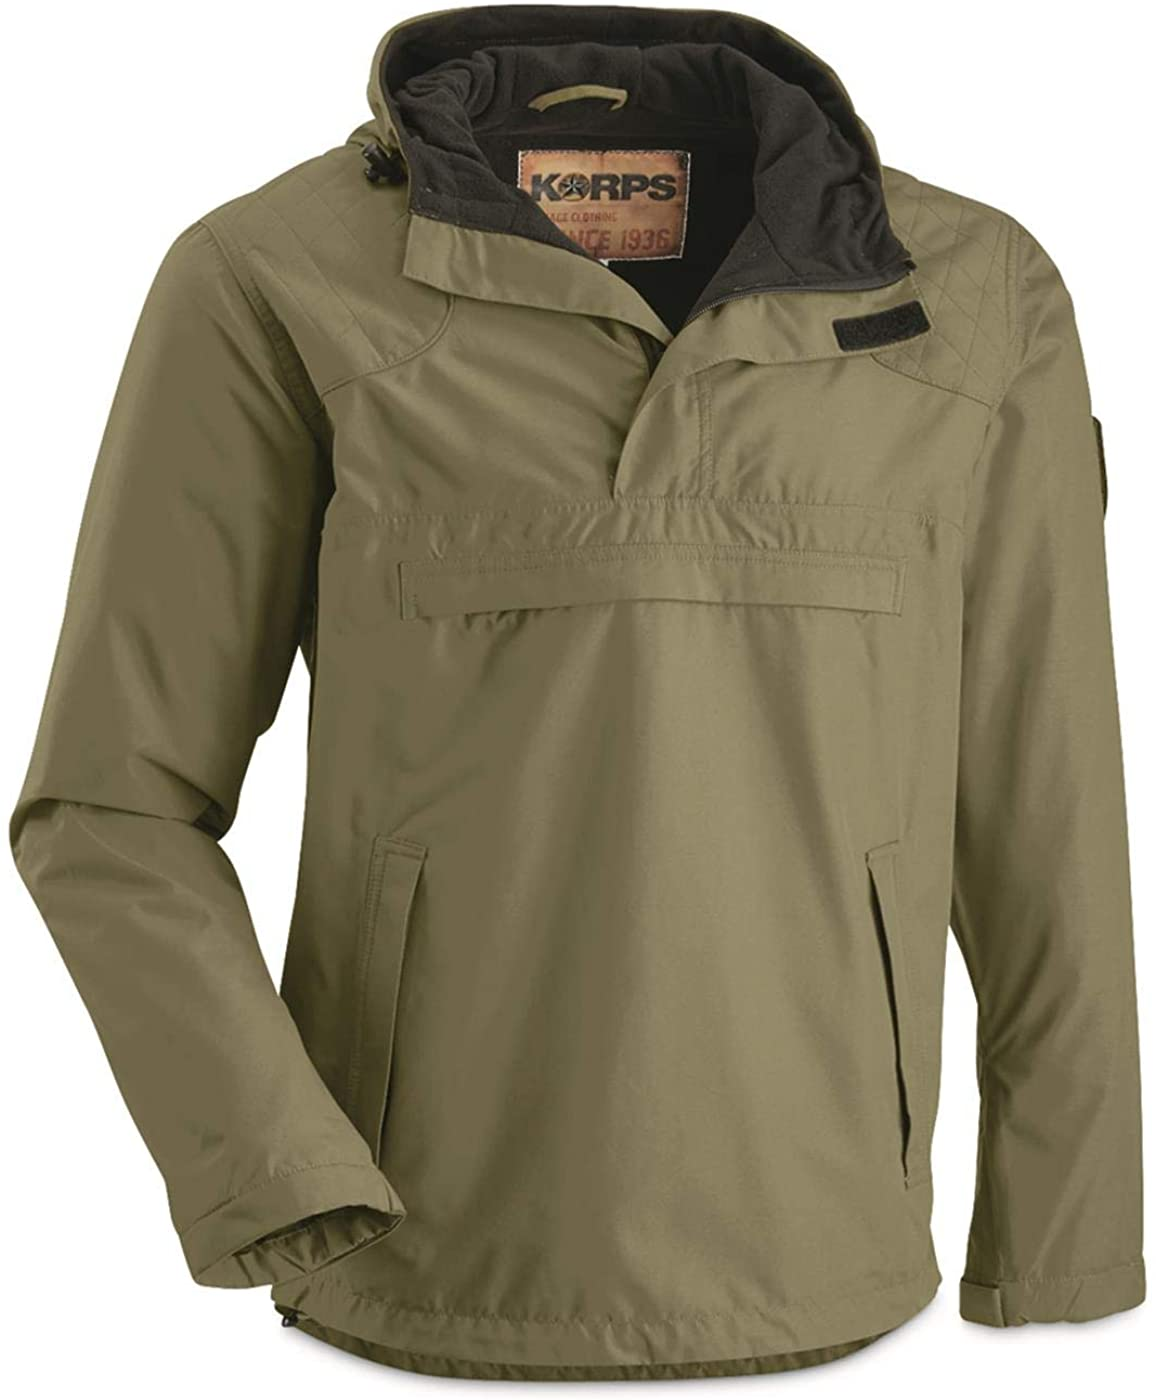 Surplus Italian Military Waterproof Windproof Anorak, New